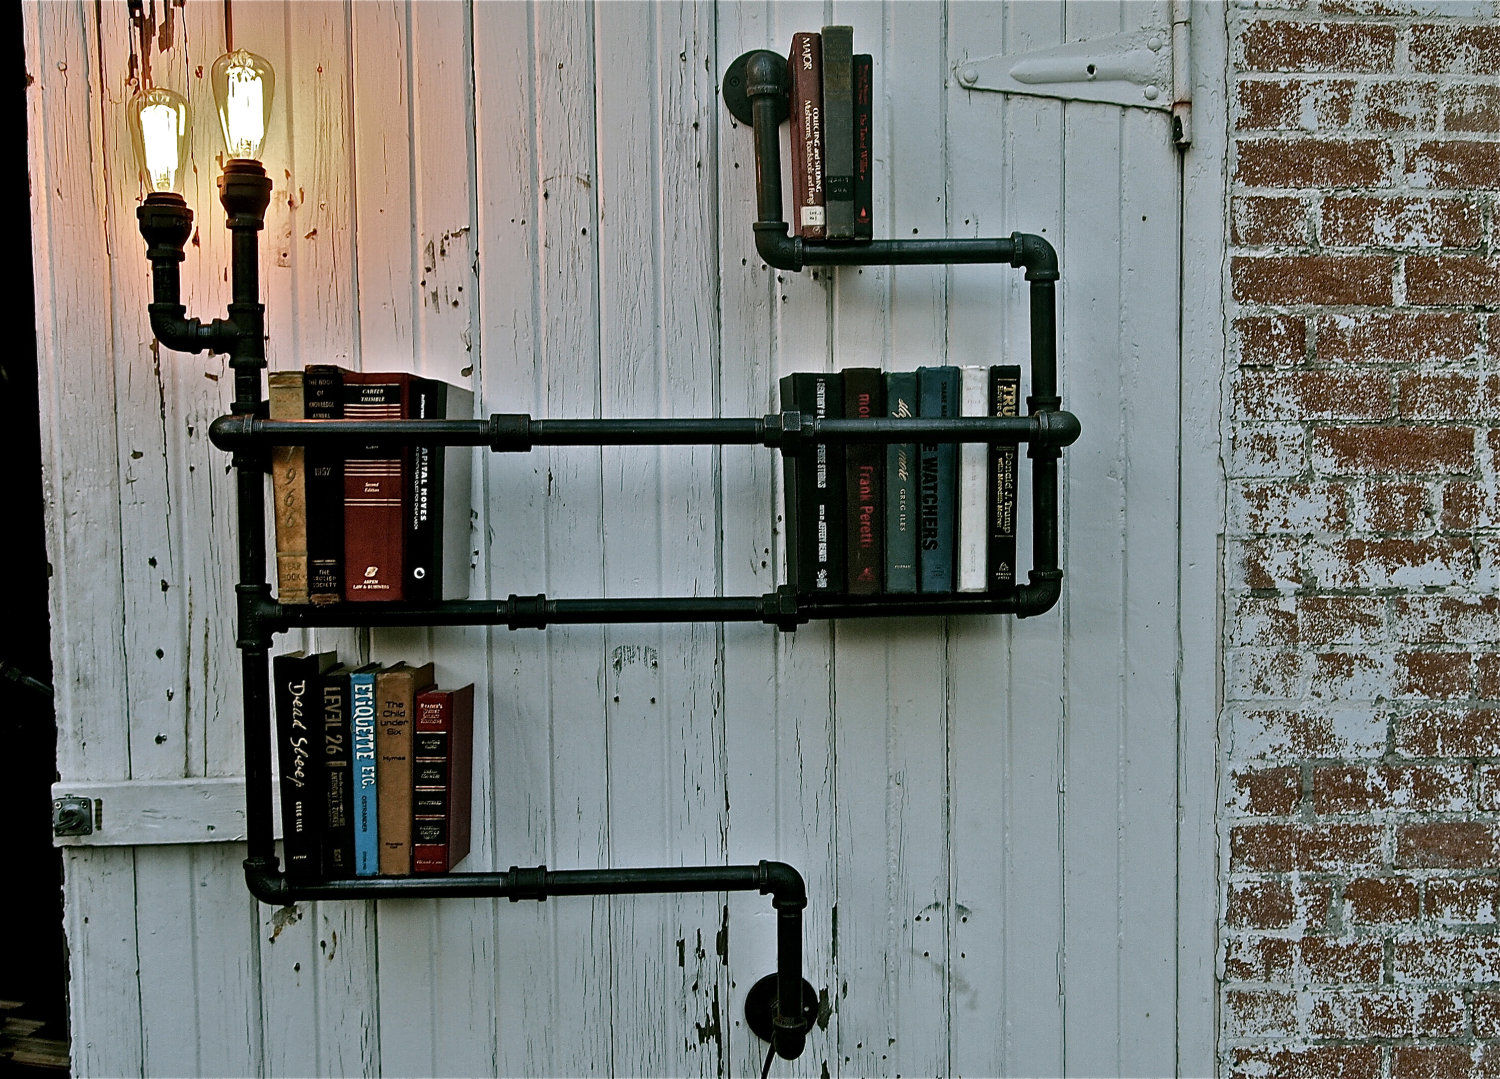 Decorative Industrial Shelving The Collectionaire Pipe Dreams With Stella Bleu Designs